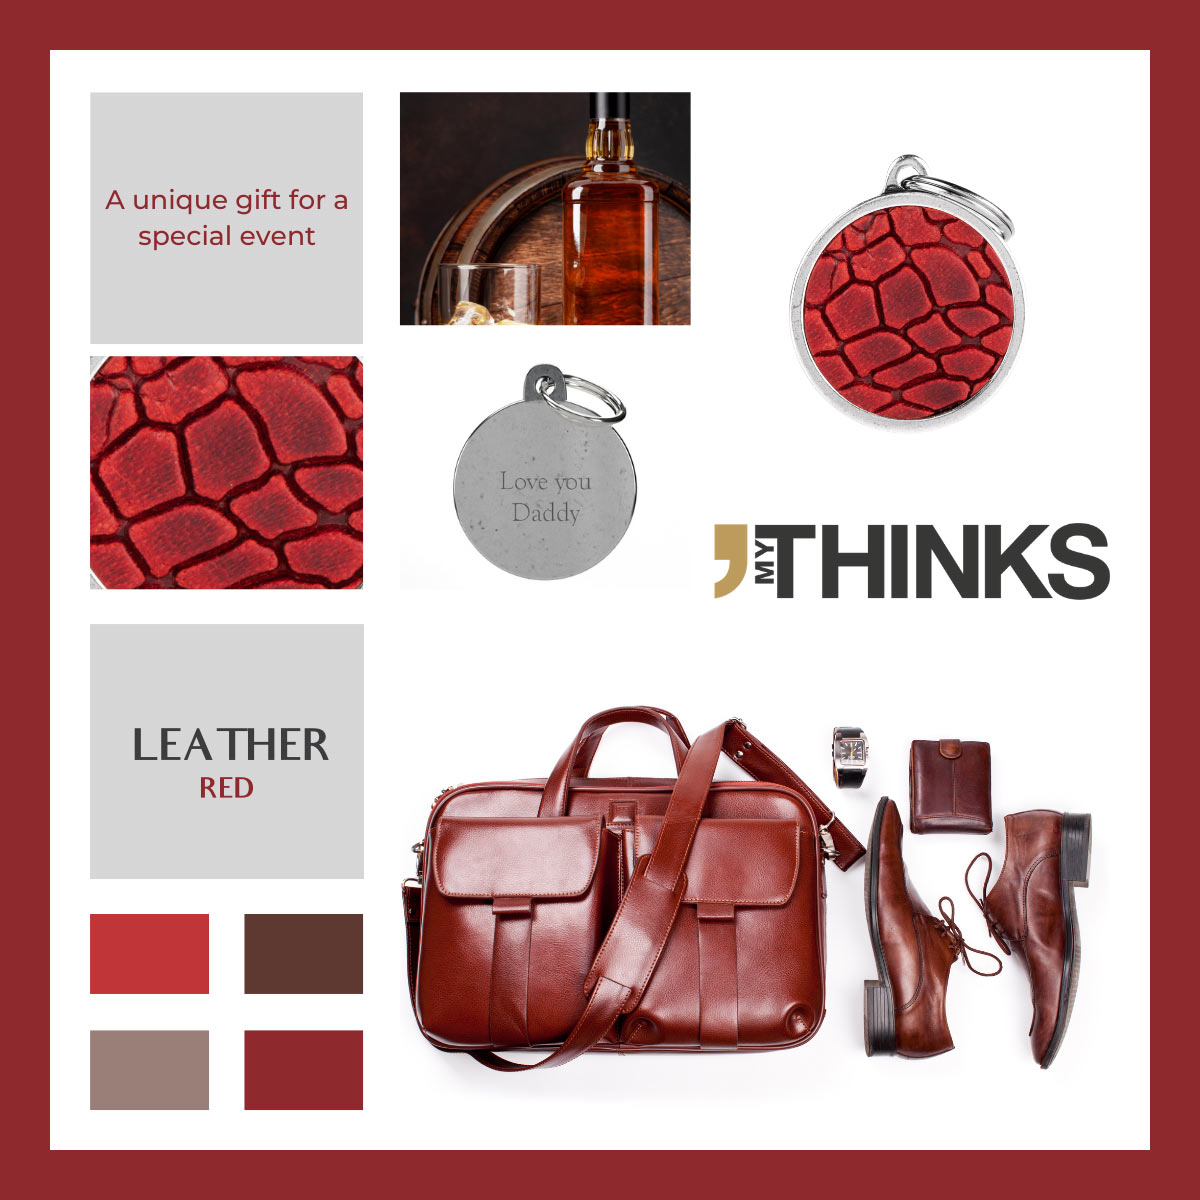 Mood board Leather collection gifts with red leather charm personalized for the perfume and travel accessories market